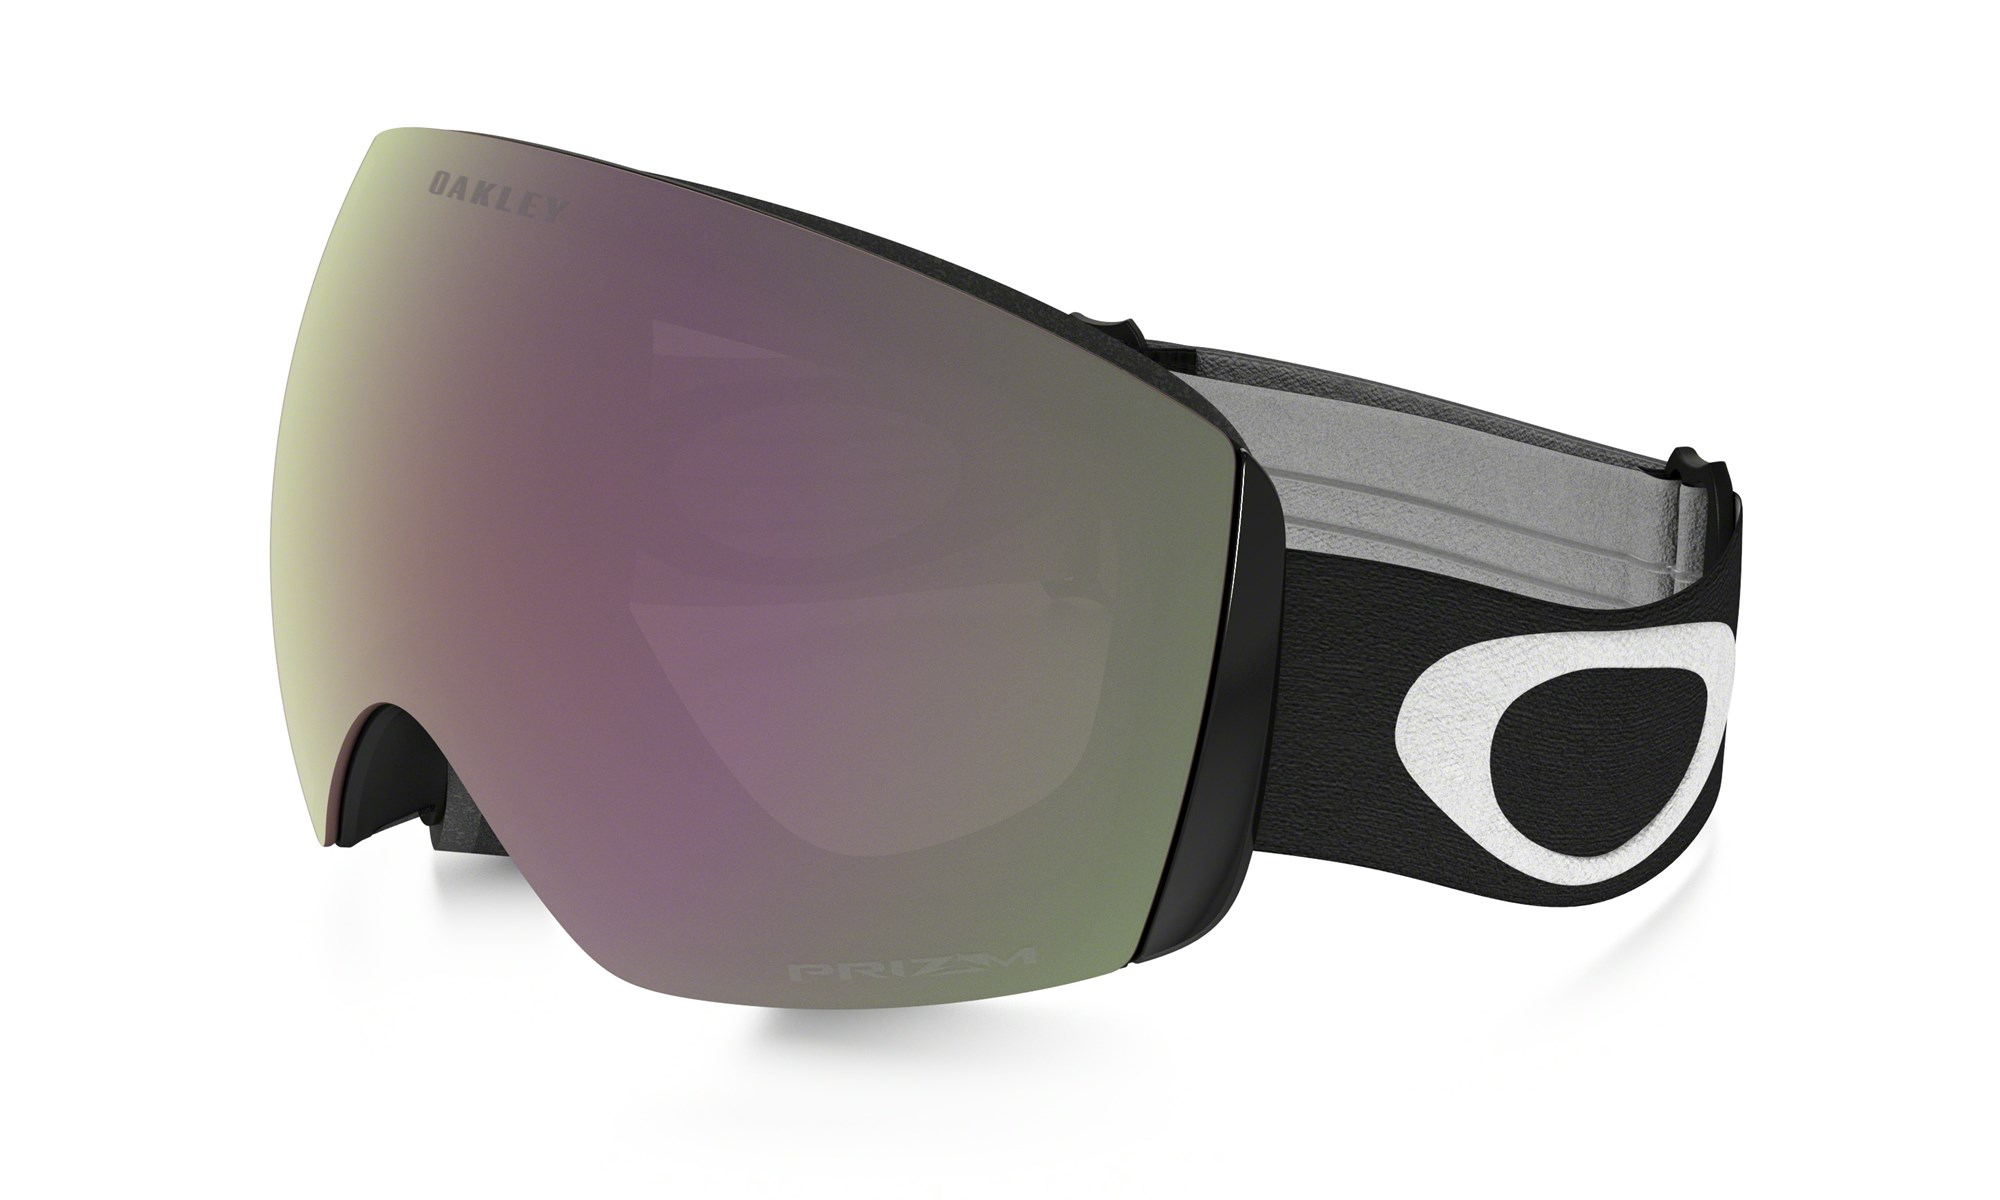 b3fec30dbf Oakley Flight Deck XM 2019 Black Matte Prizm HI Pink Lens. 0 (Be the first  to add a review!)